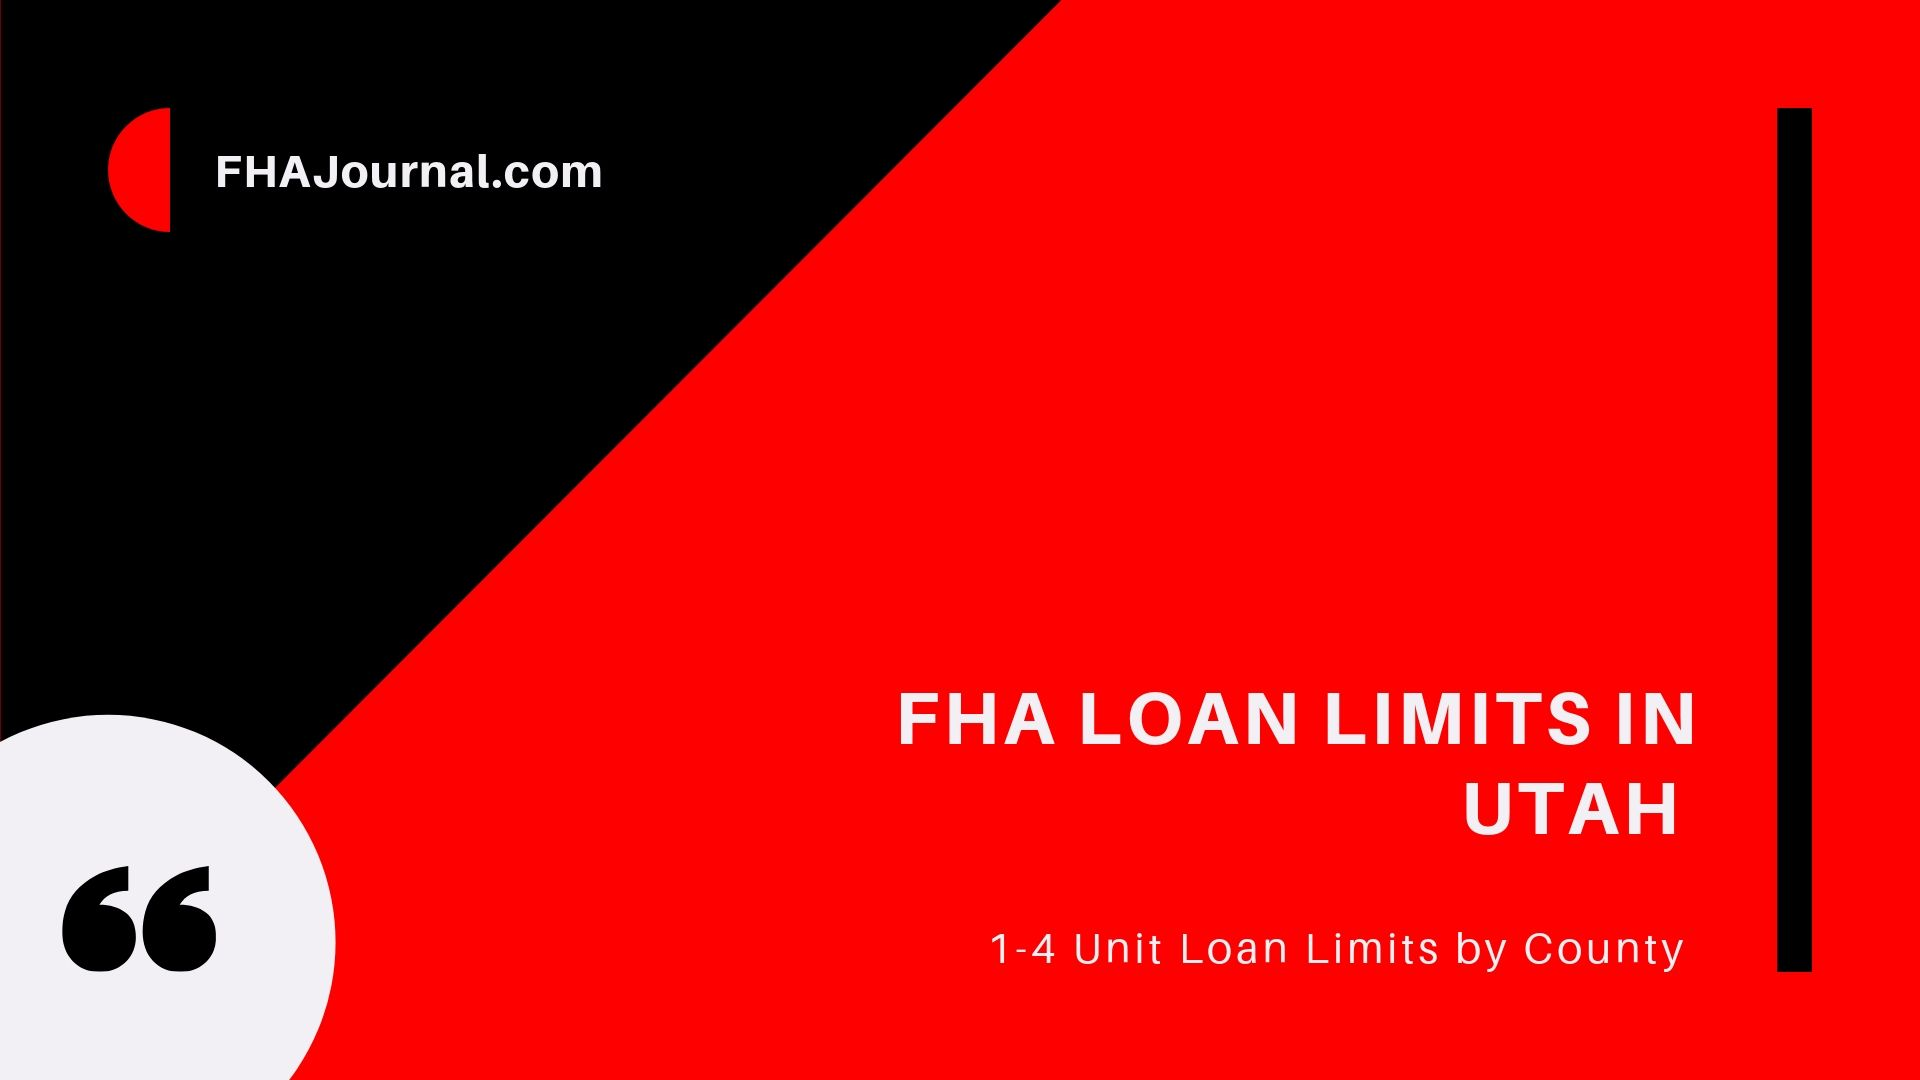 FHA Loan Limits in Utah